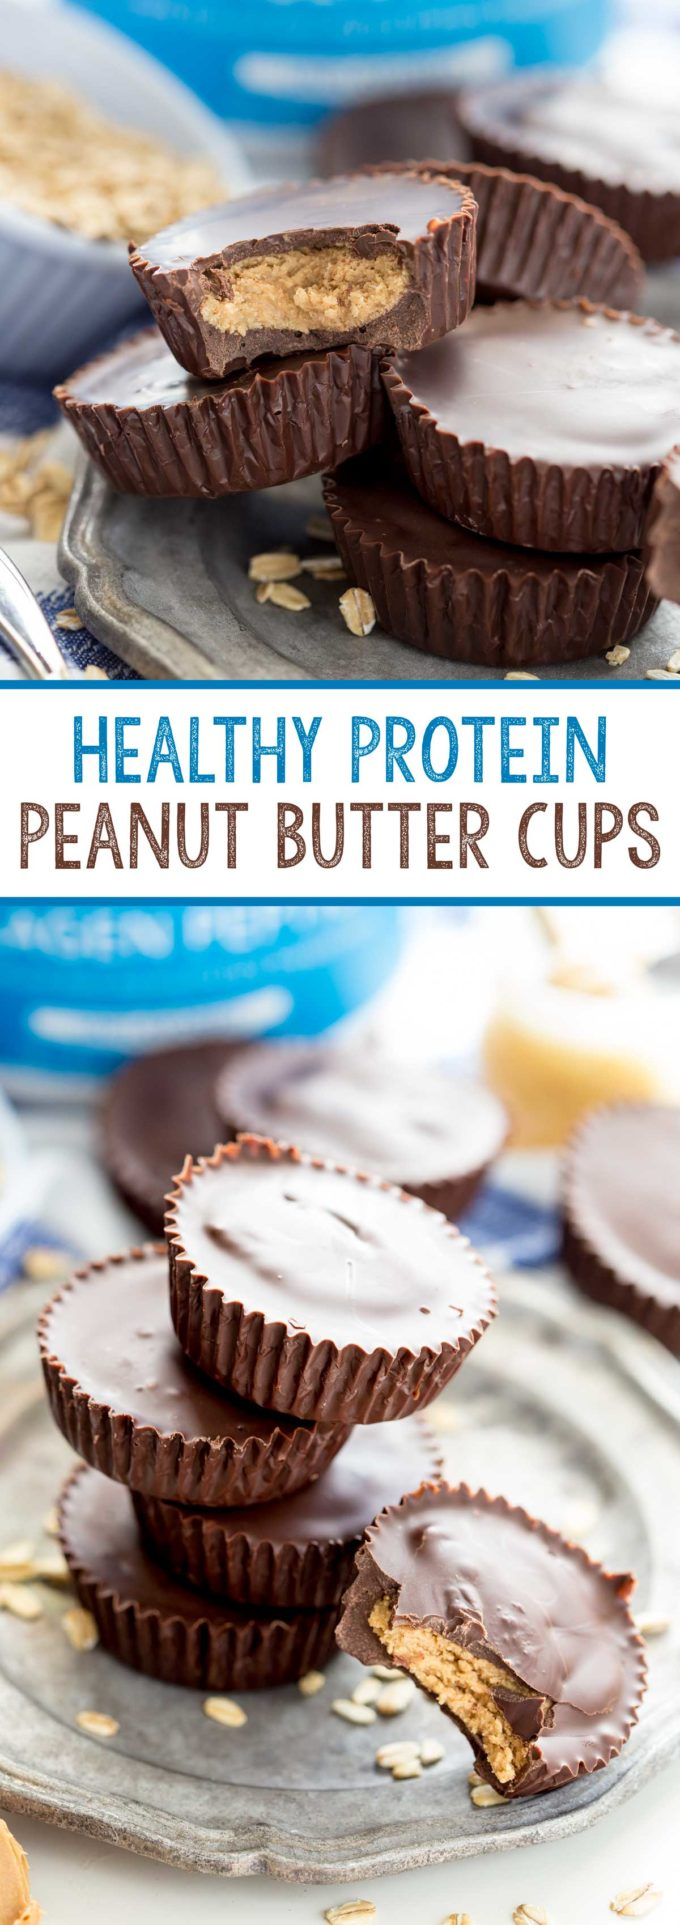 homemade delicious and healthy peanut butter cups. Rich dark chocolate, creamy peanut butter filling, and a healthy serving of protein per peanut butter cup